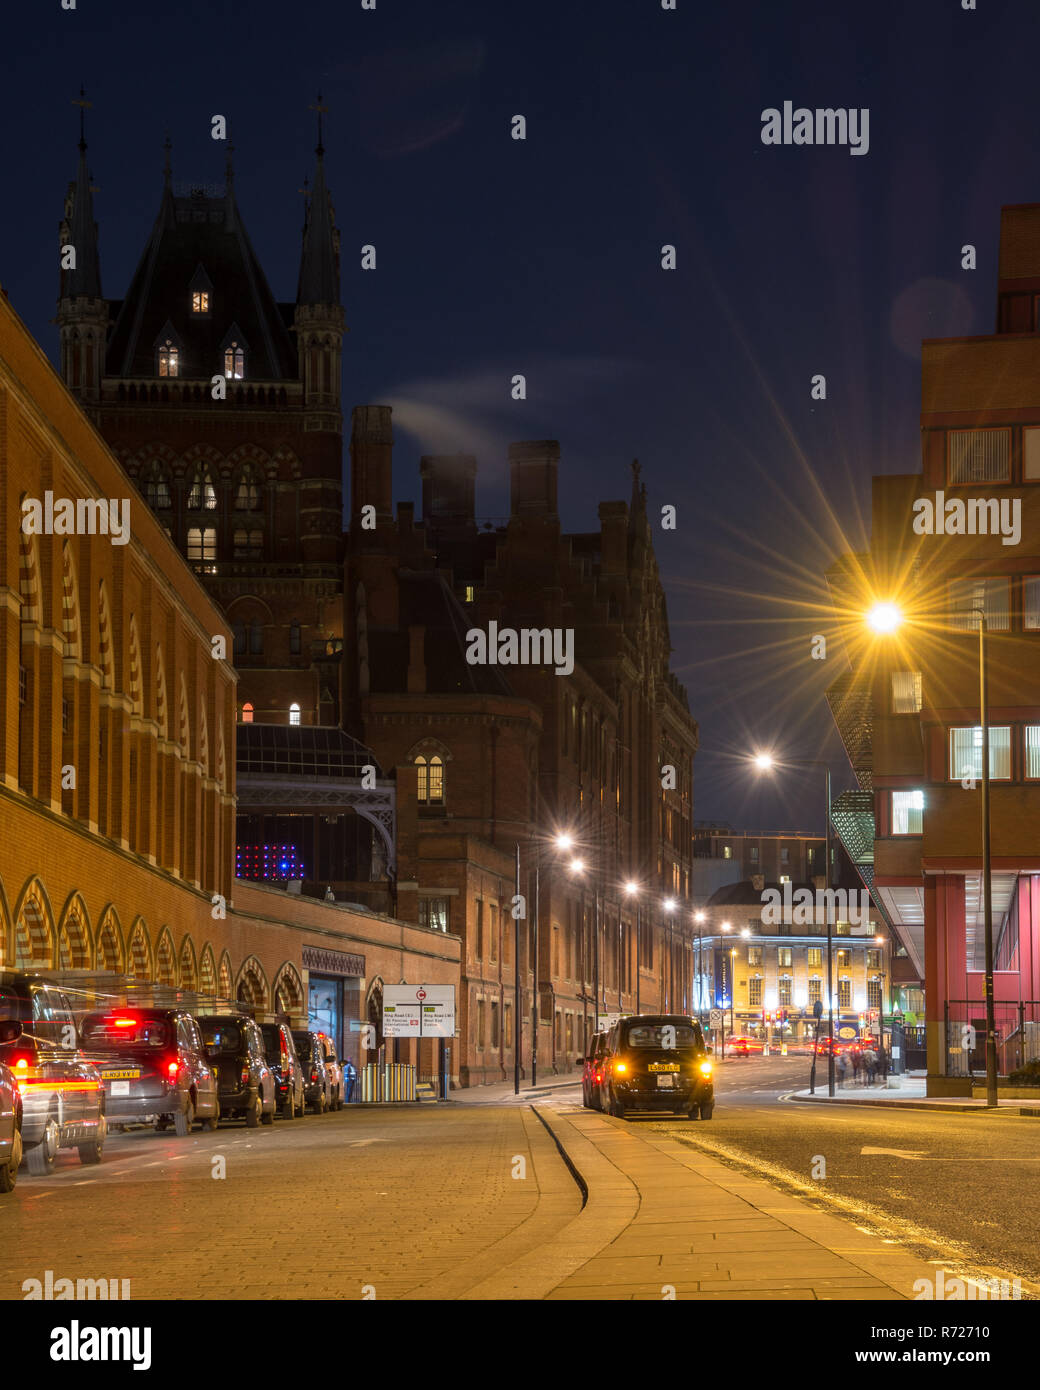 London, England, UK - February 27, 2018: Taxis queue at a rank outside London's ornate Victorian gothic brick St Pancras Railway Station  at night. - Stock Image